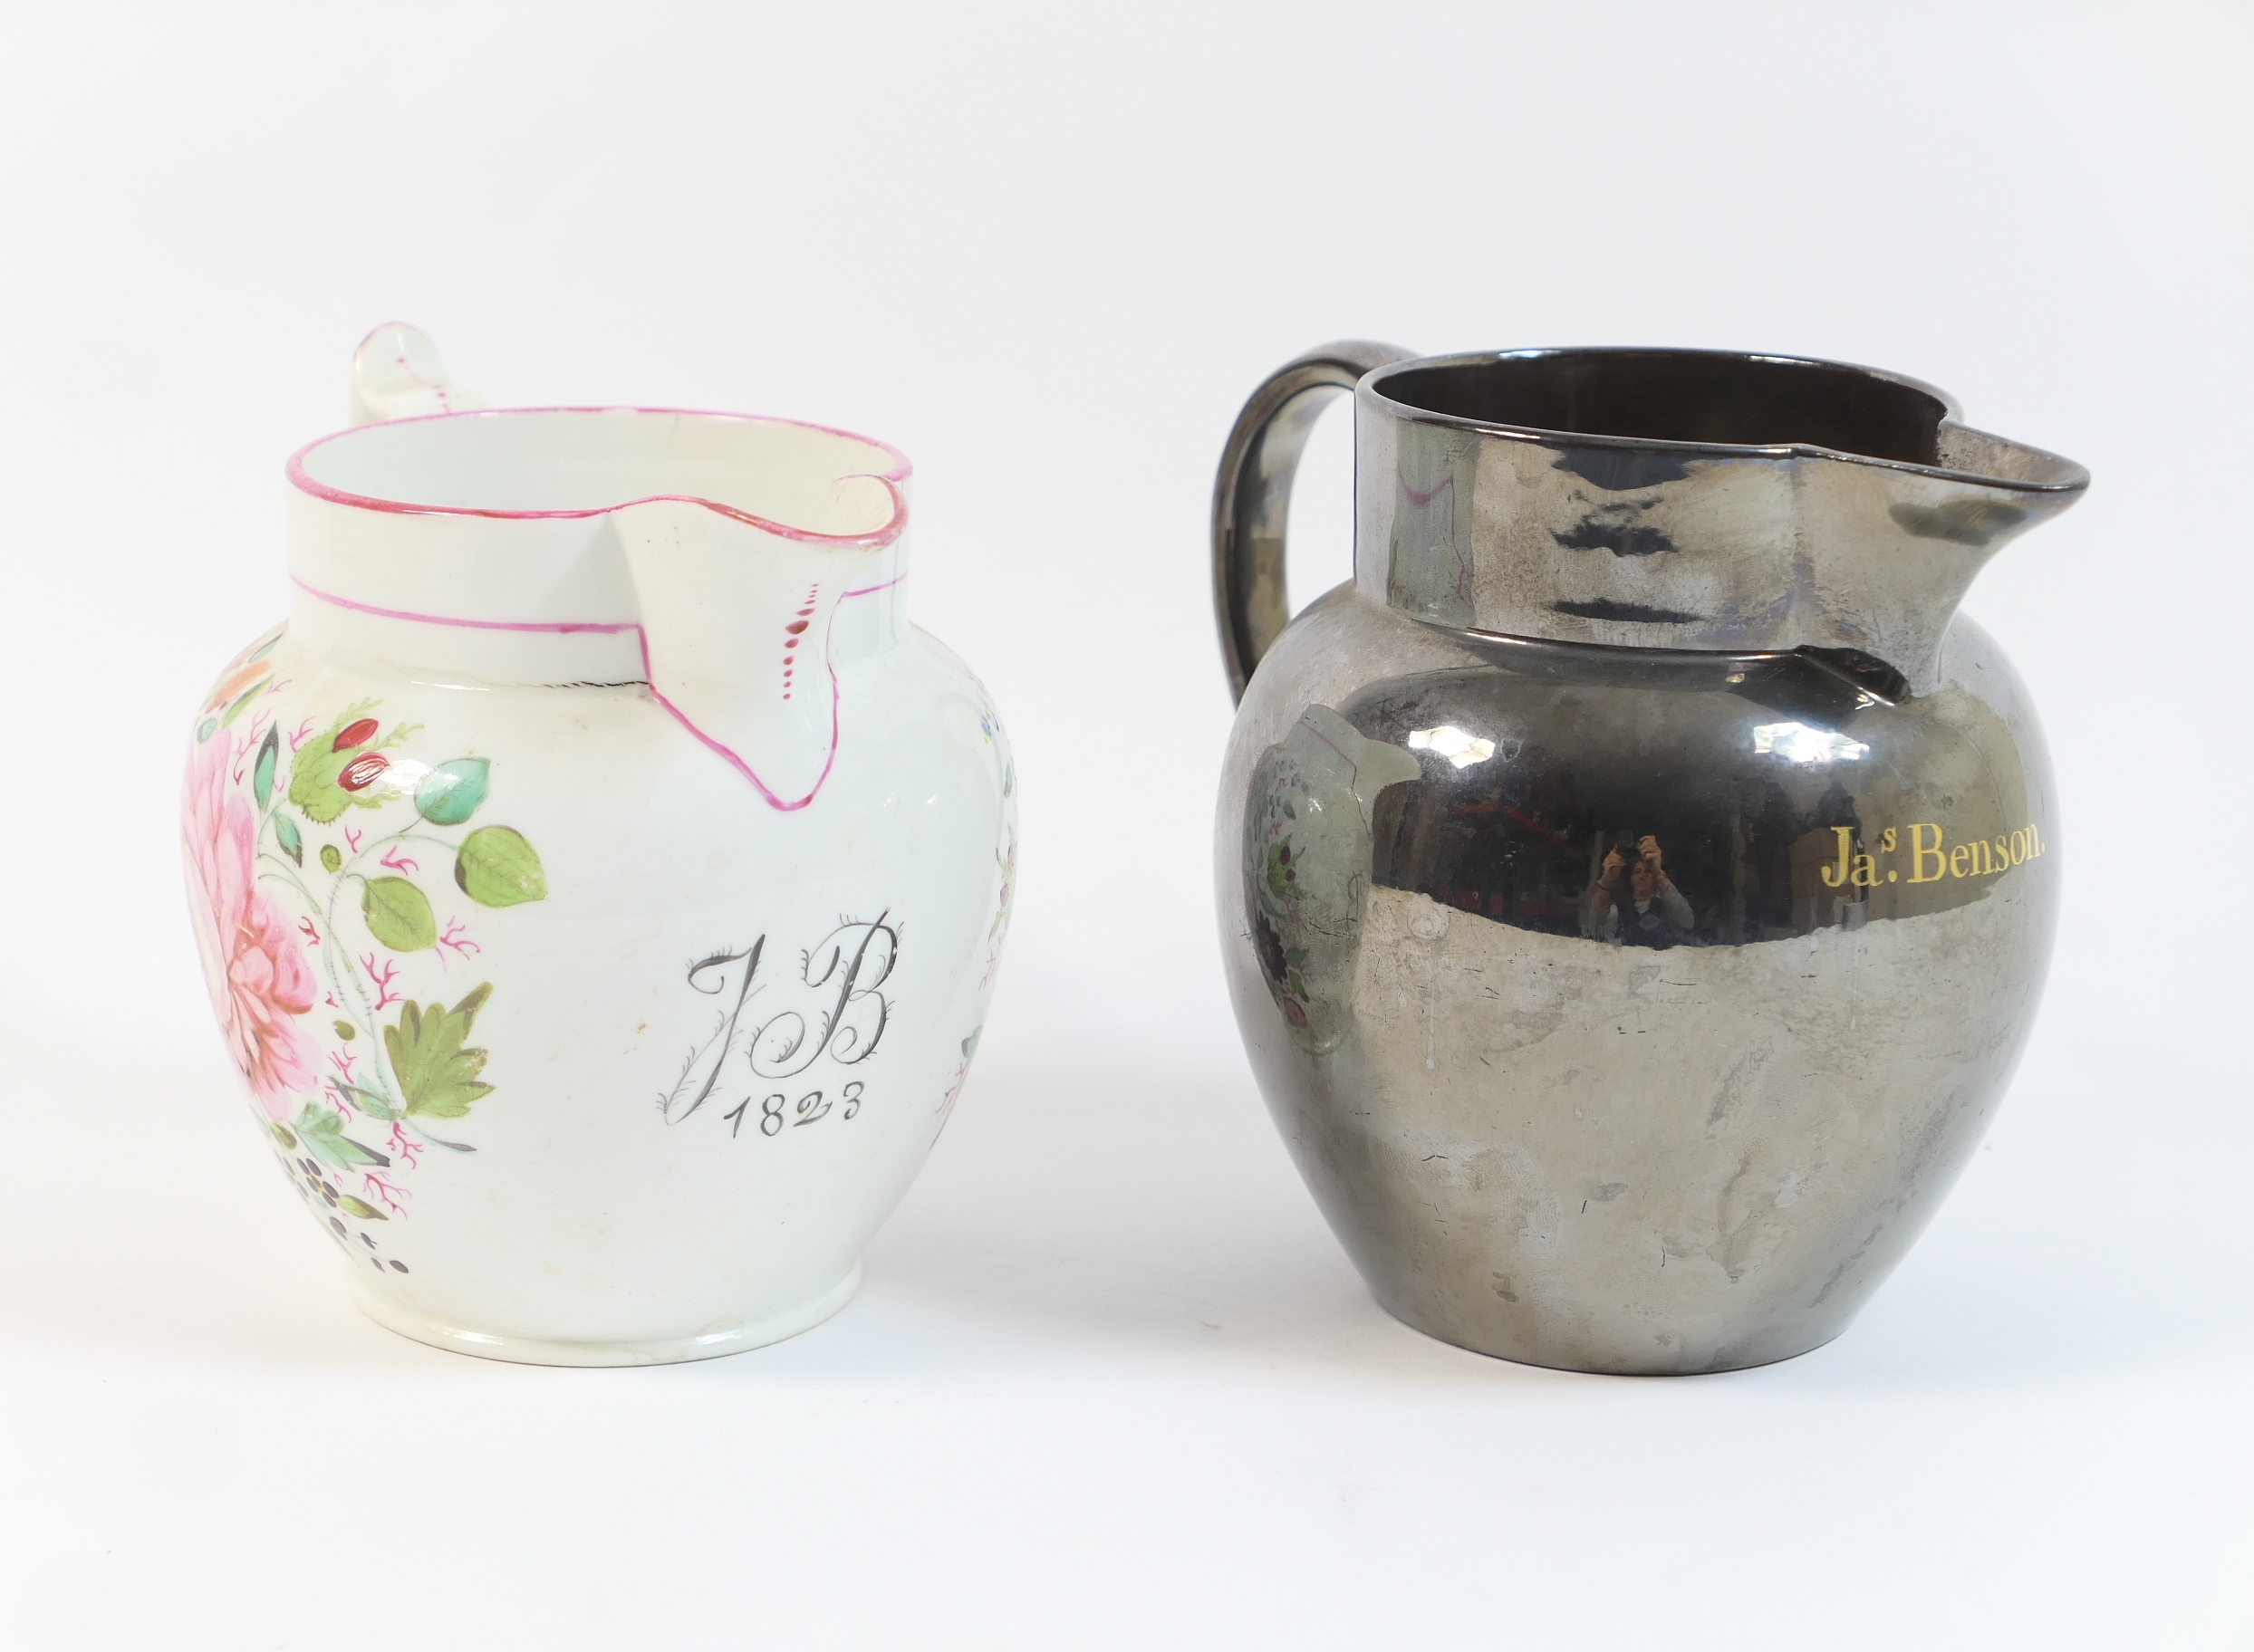 Lot 38 - Staffordshire dated milk jug, circa 1823, decorated with floral sprays in bold colours, against a